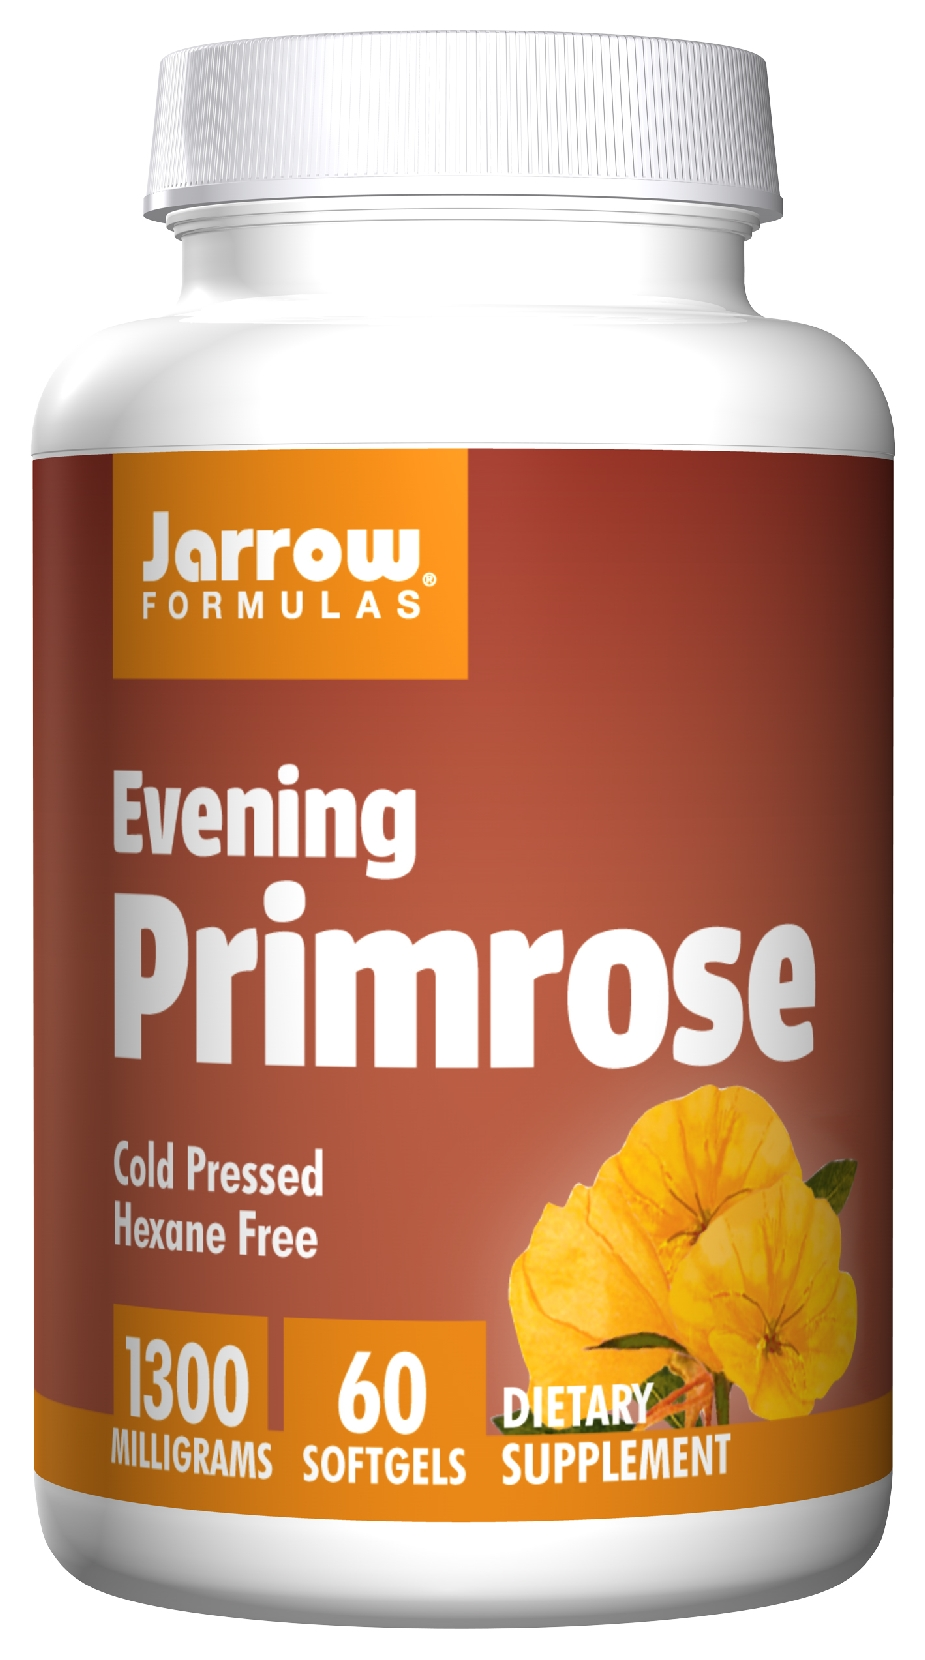 Evening Primrose 1300 1300 mg 60 sgels by Jarrow Formulas